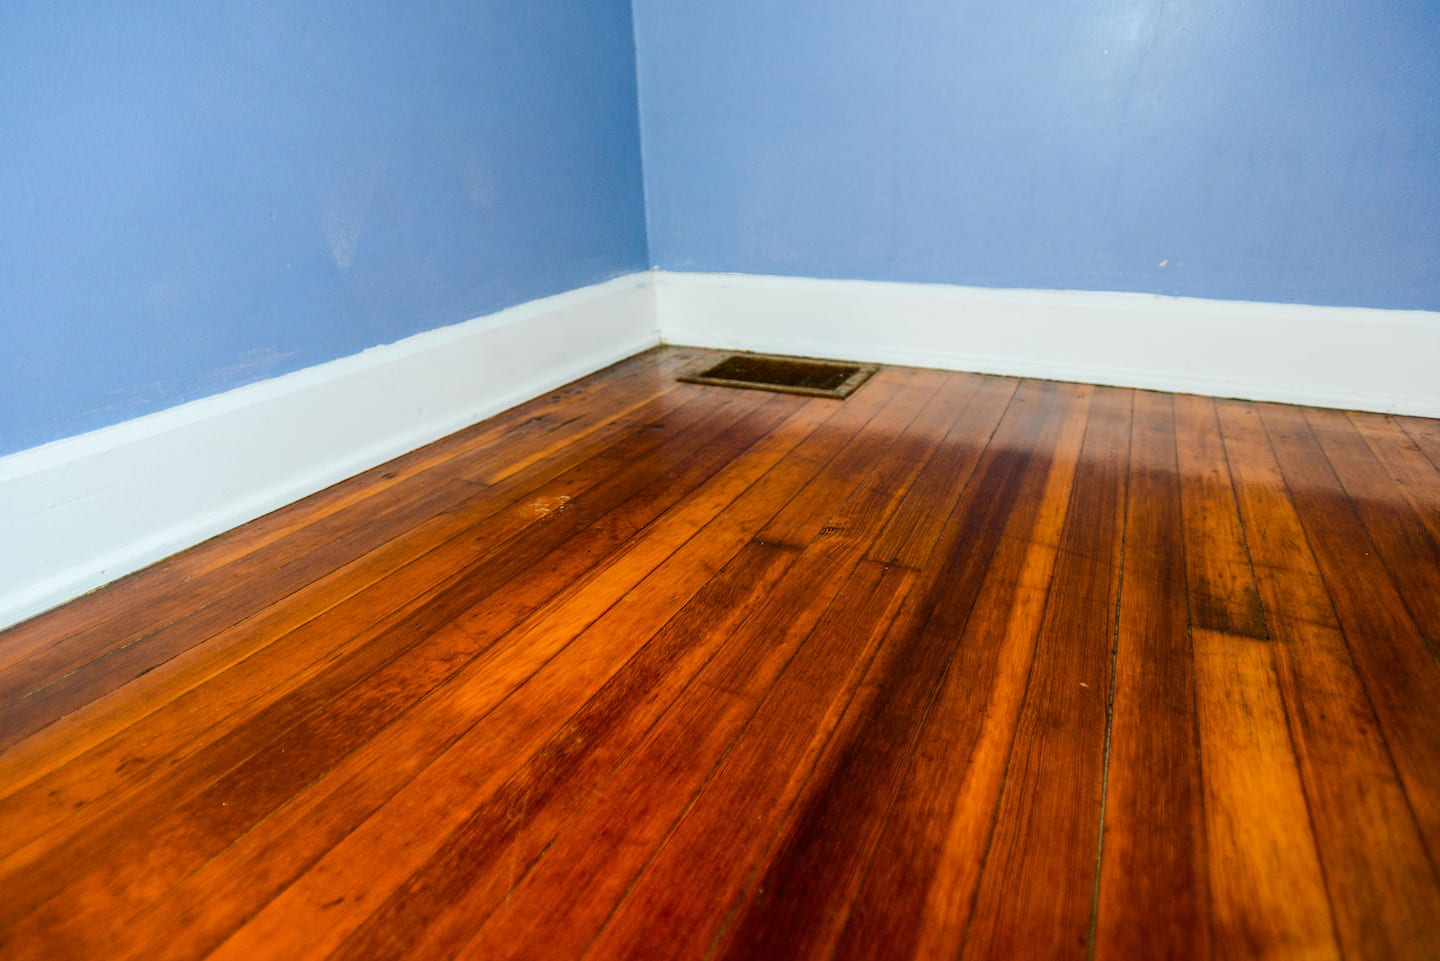 How to fix hardwood floors that squeak - How To Fix Hardwood Floors That Squeak 21